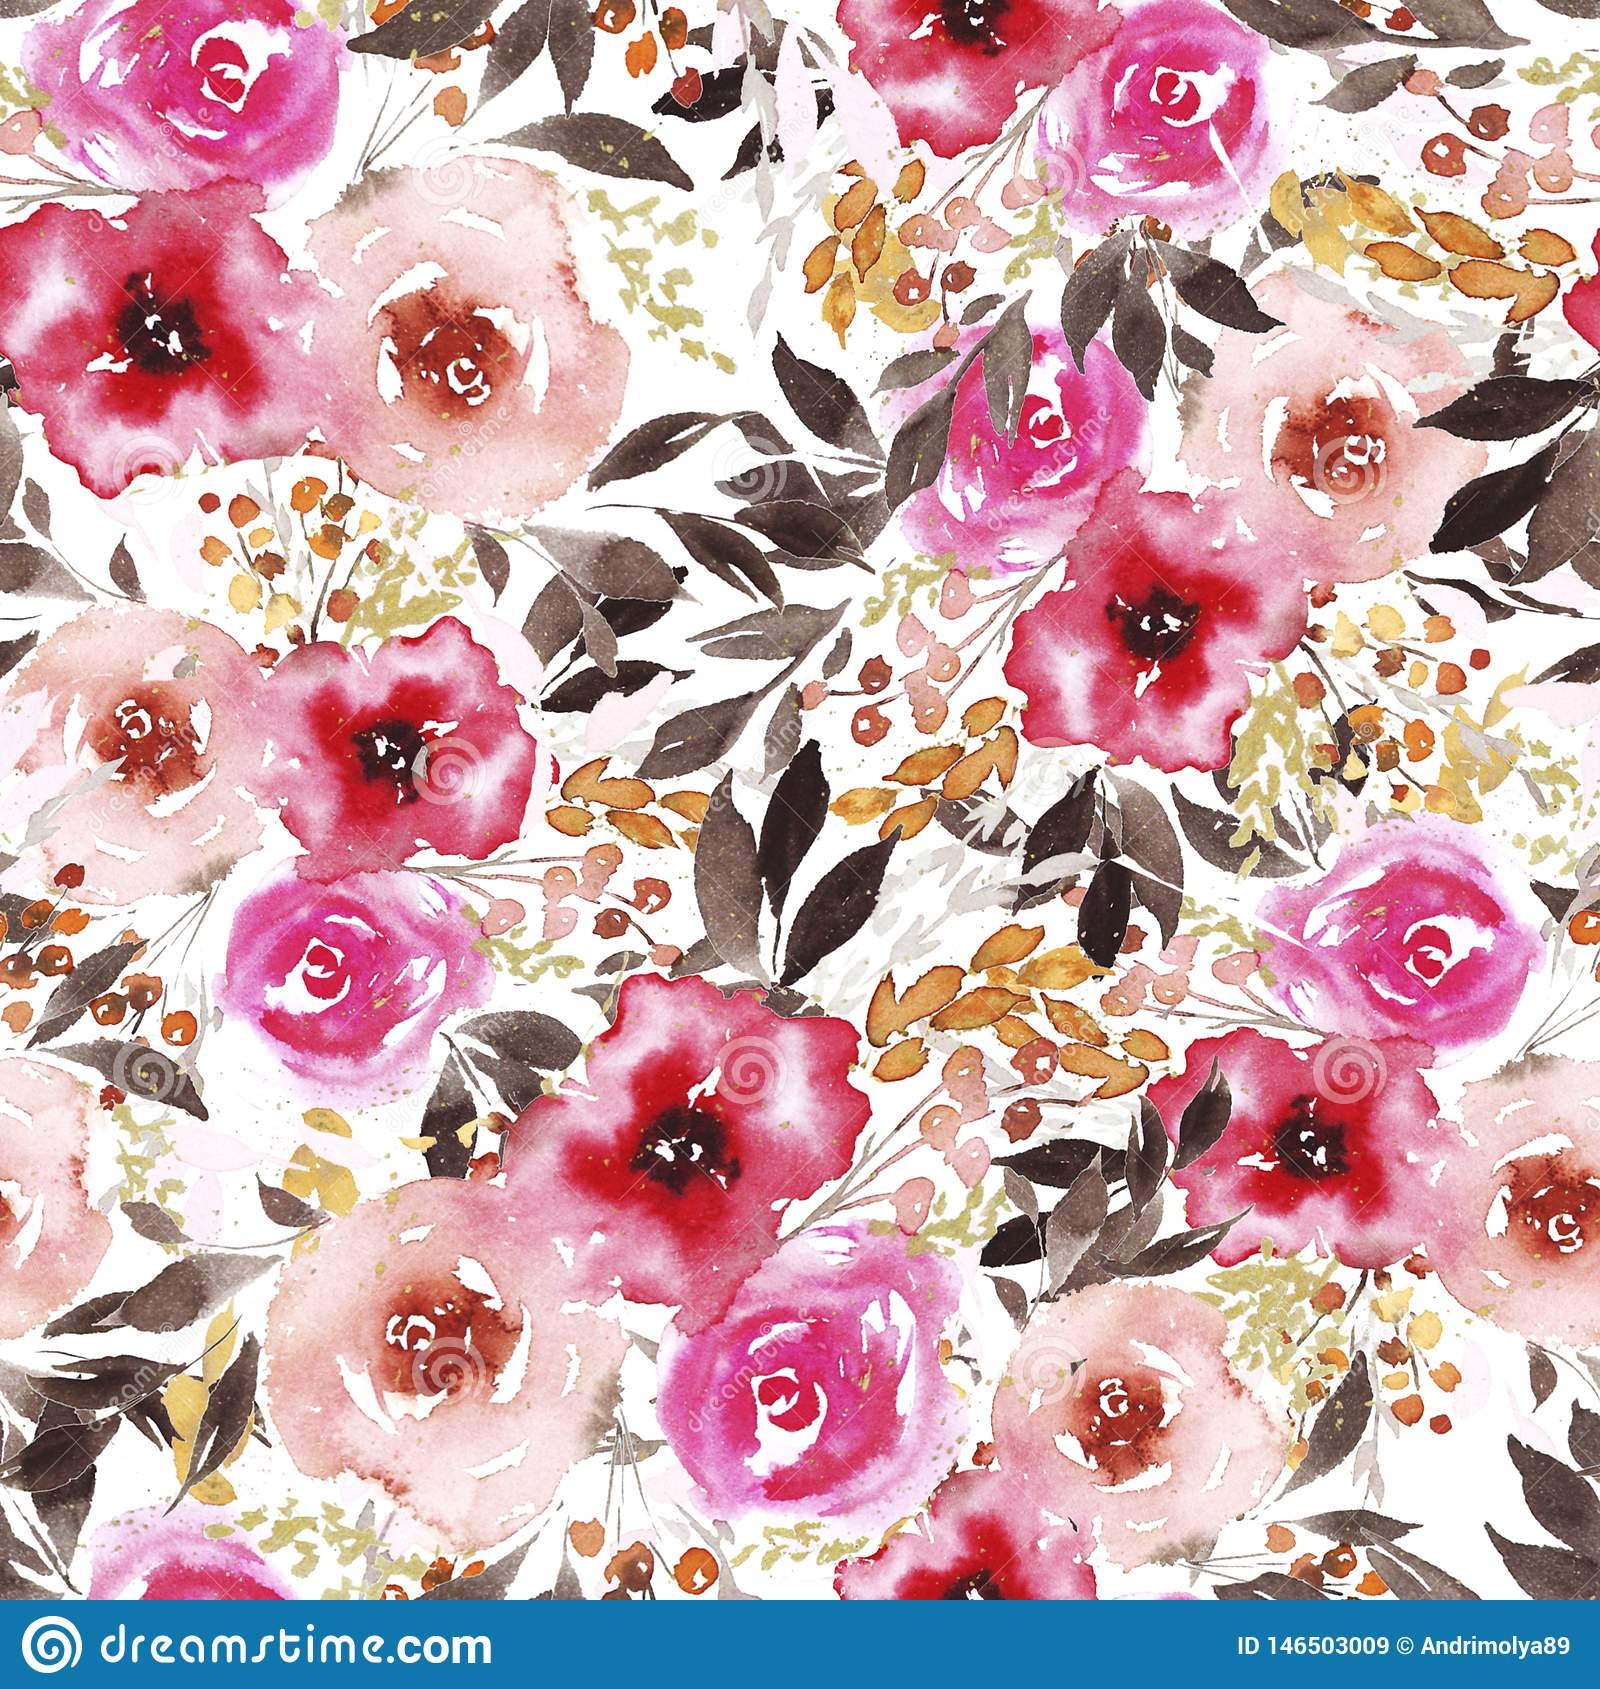 Pattern with abstract watercolor pink and red flowers